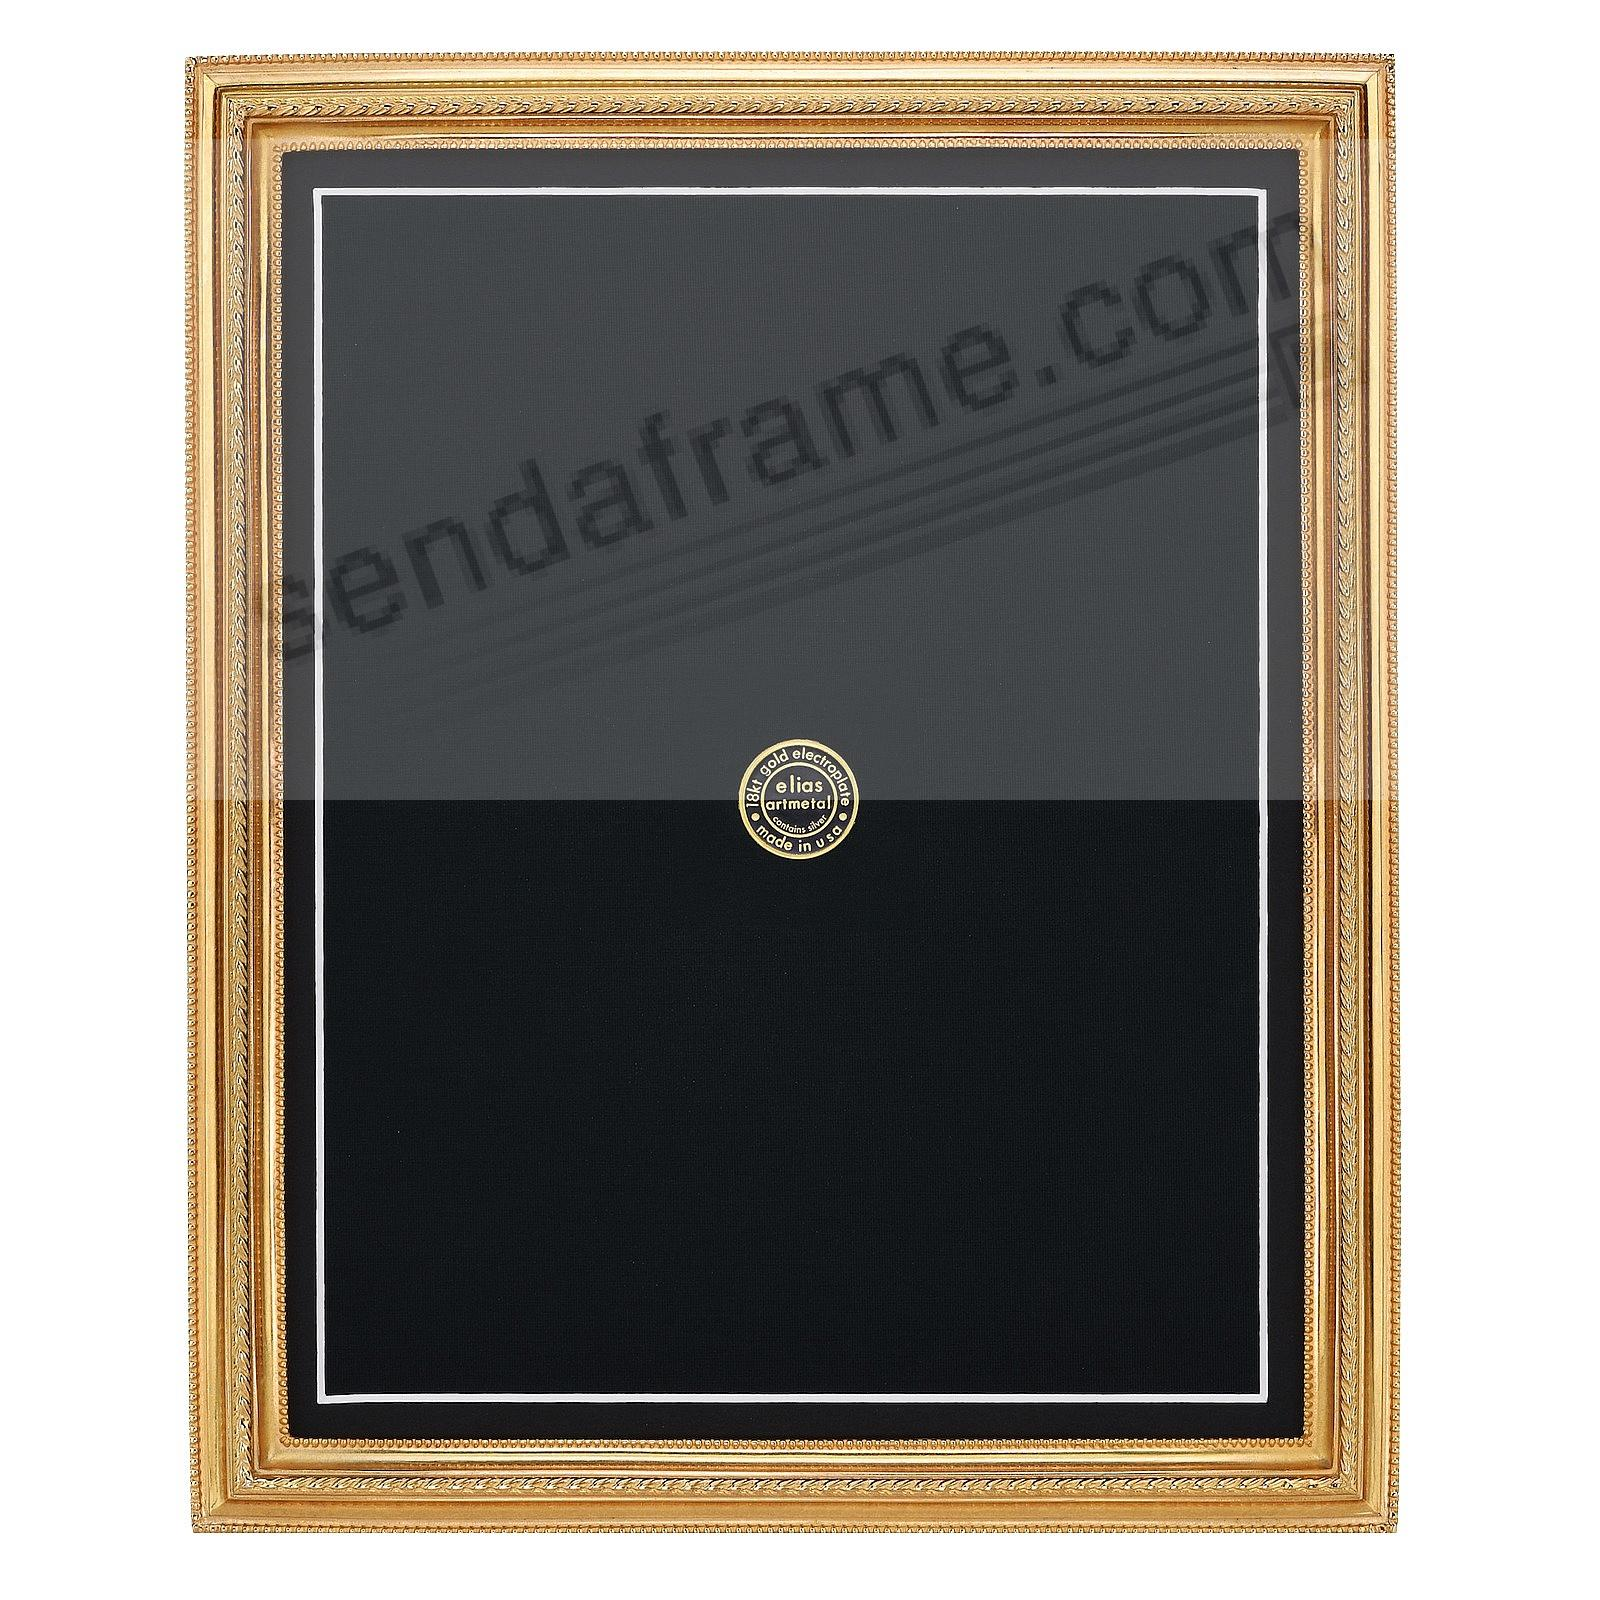 Gold PINNACLE 18kt vermeil 11x14/8x11 frame by Elias Artmetal®